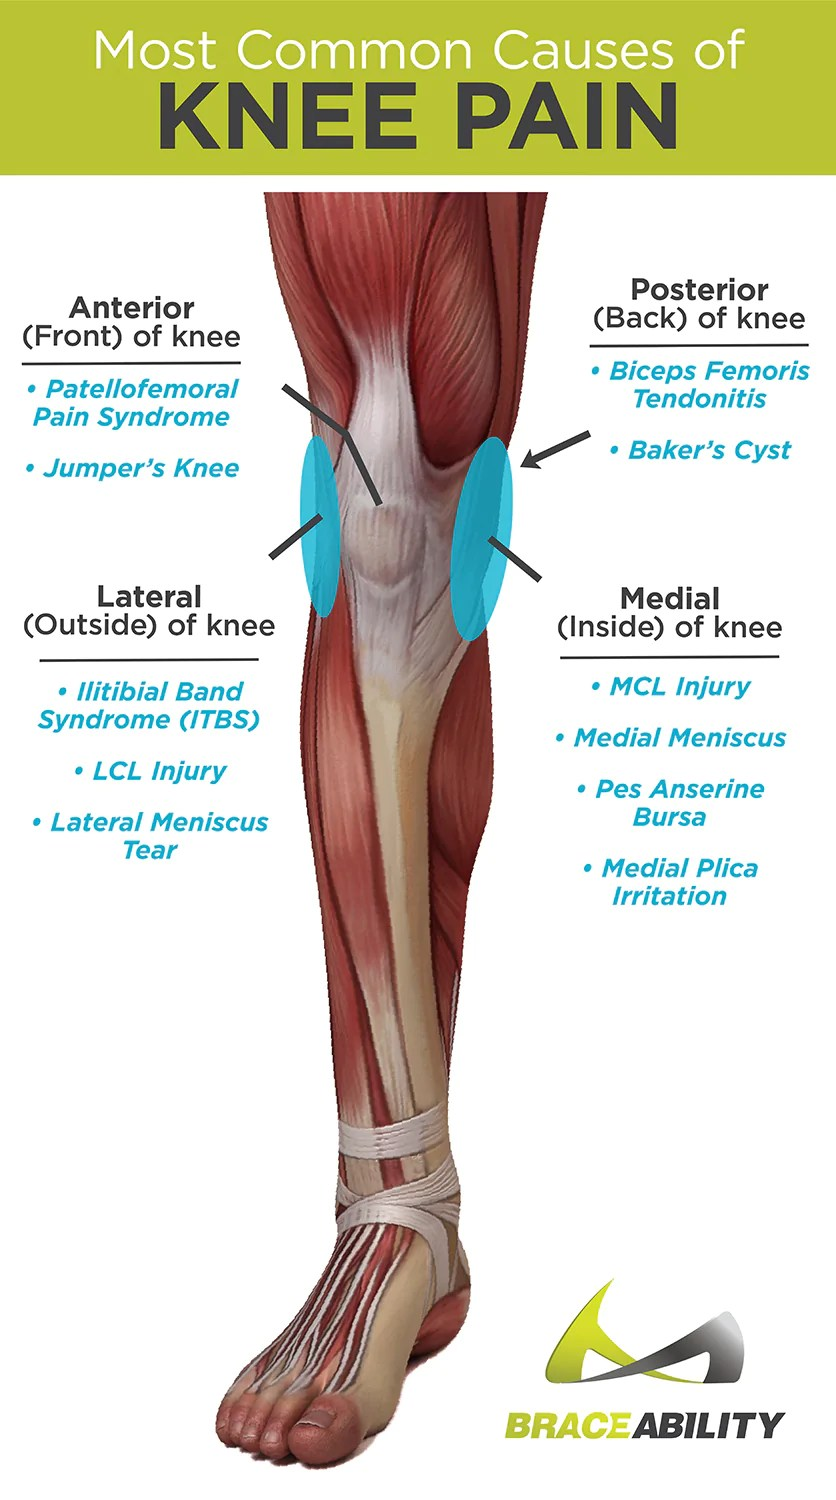 types of knee pain and what causes anterior posterior medial and lateral knee pain [ 836 x 1500 Pixel ]